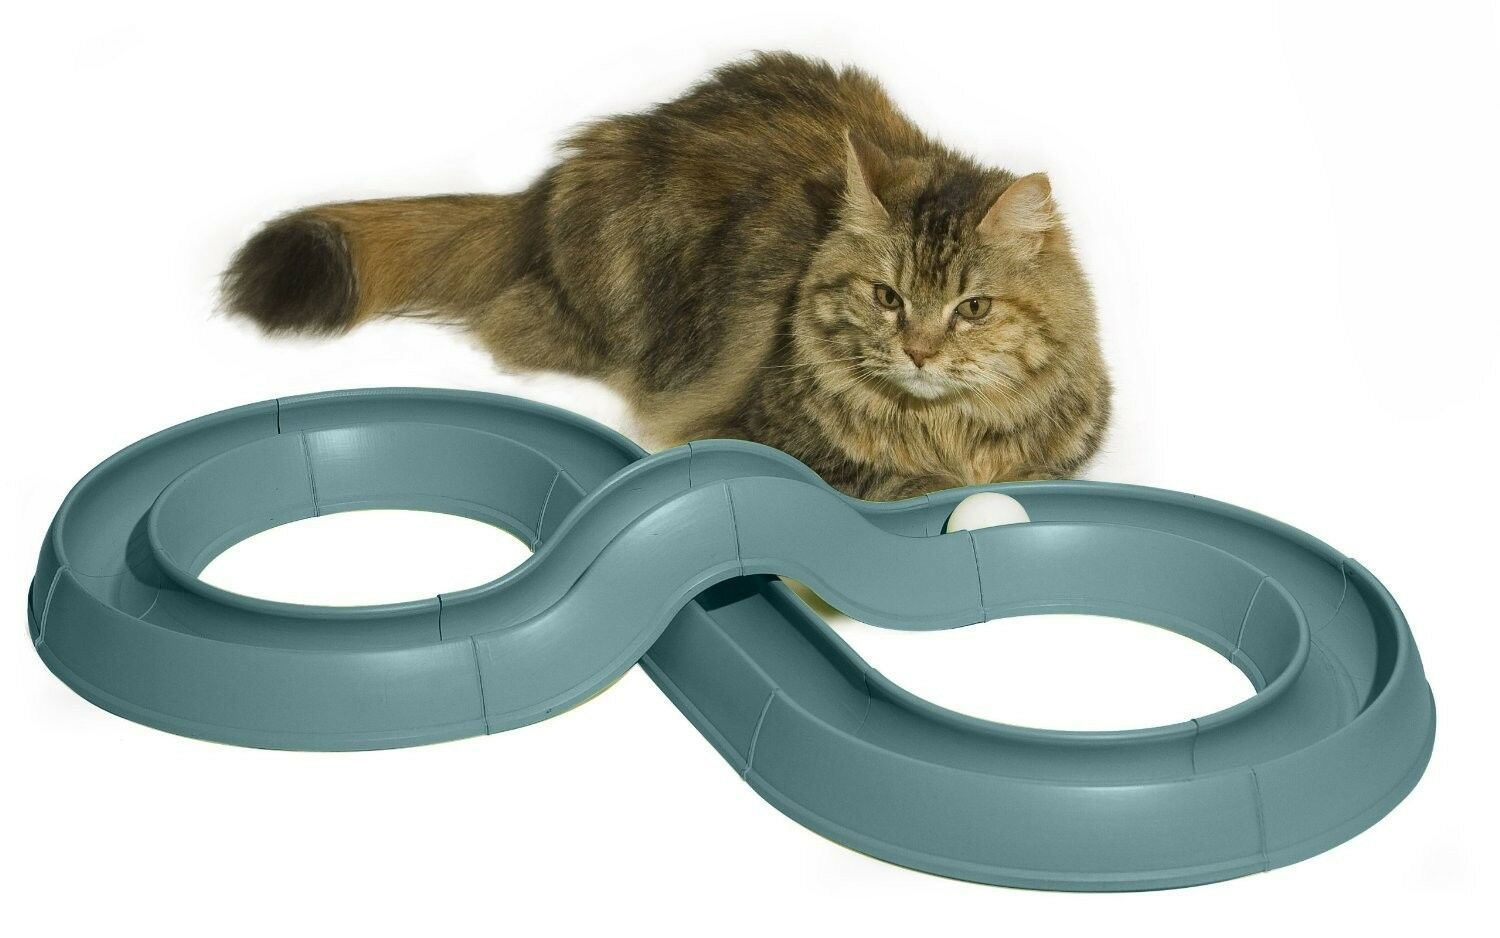 Pets Cat Circular Track Ball Playing Learning Entertainment Set Toy Set NEW